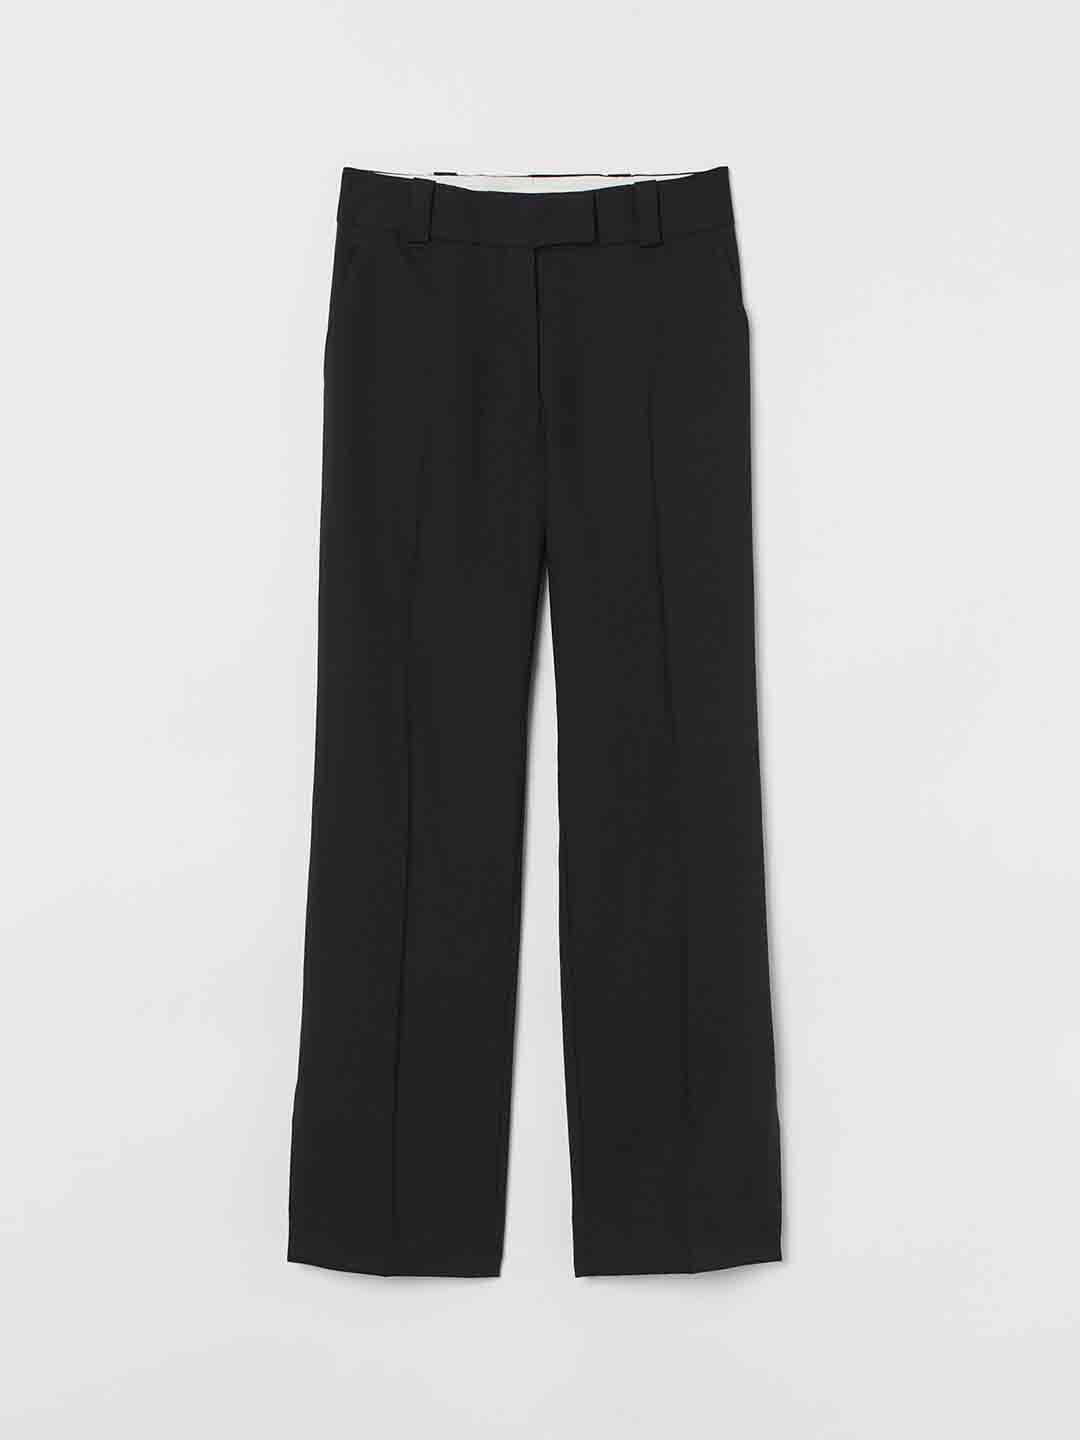 H&M Women Black Solid Wool-blend Trousers